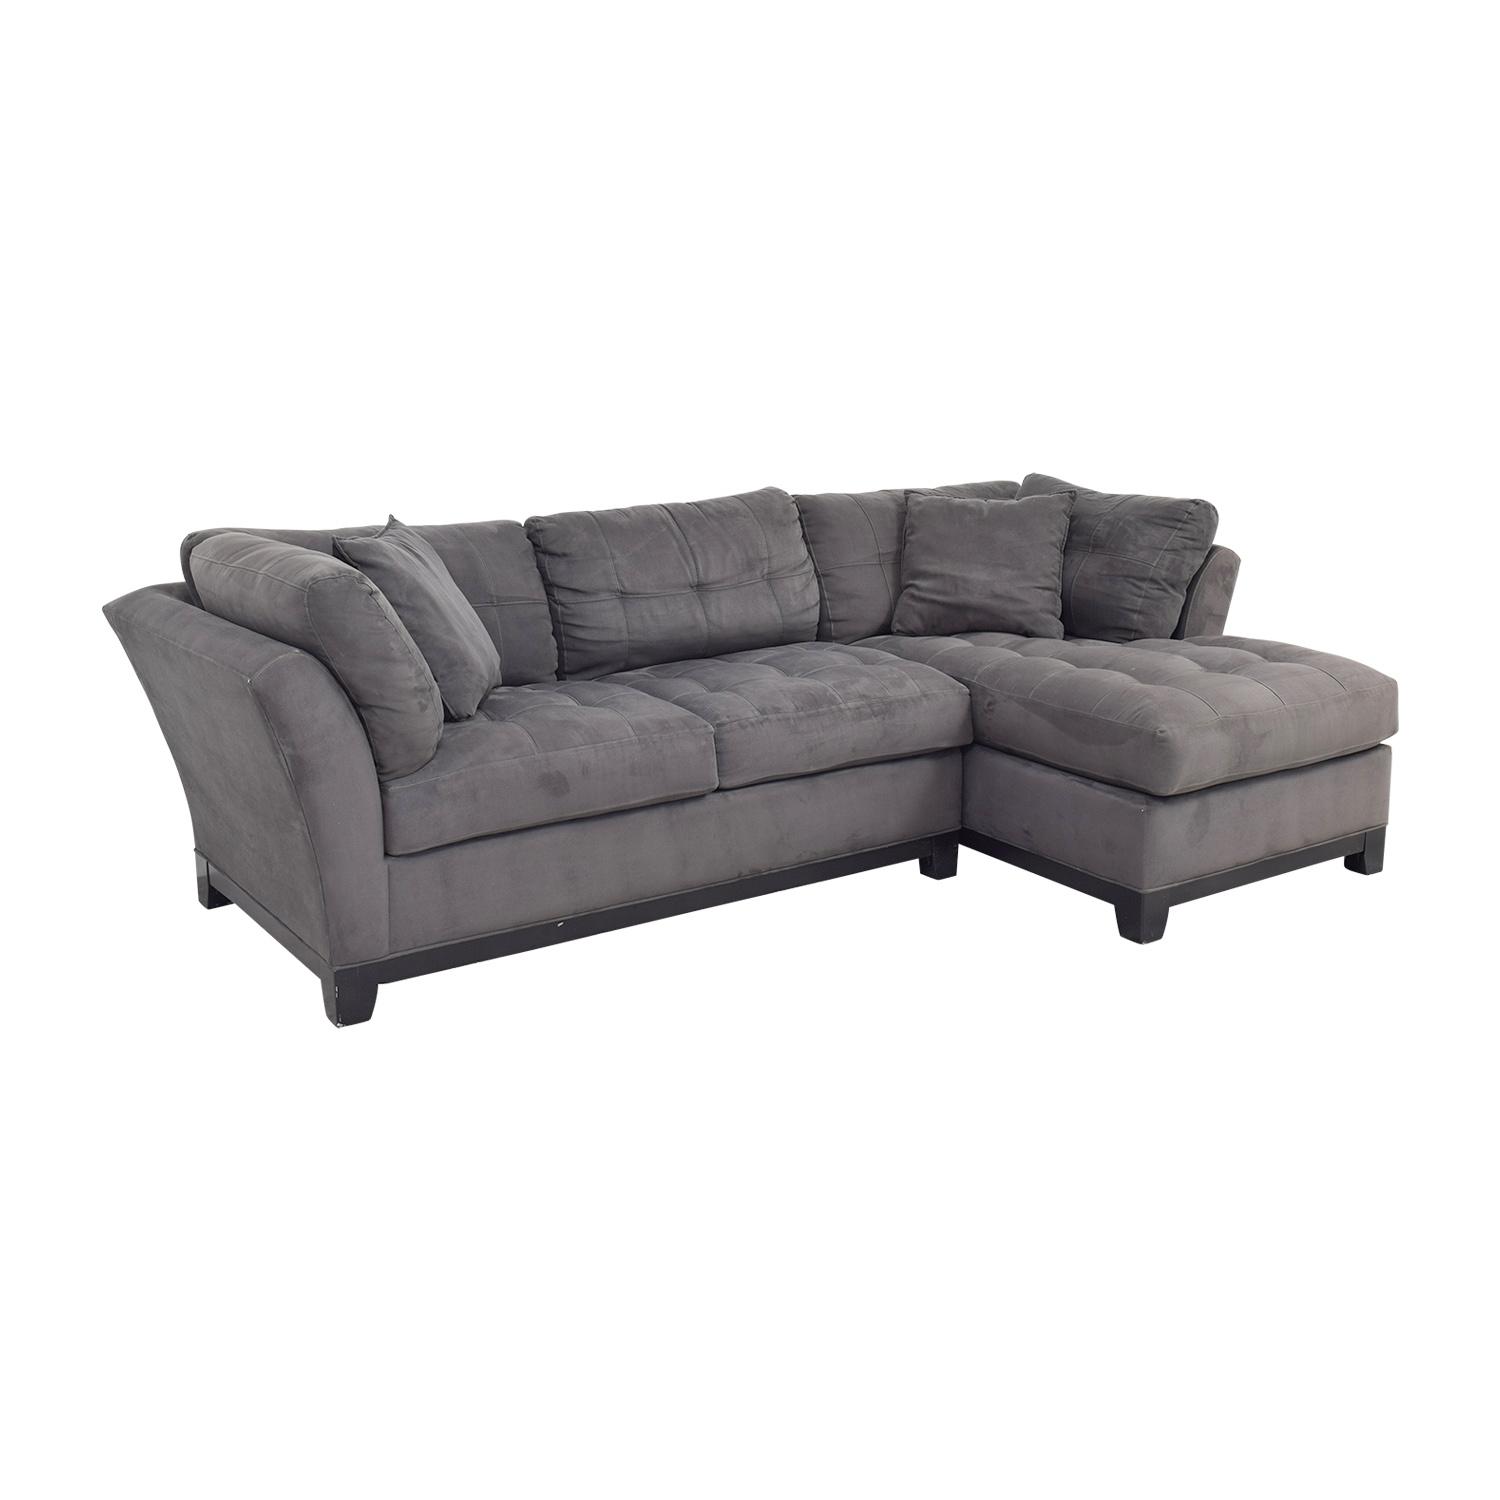 Raymour & Flanigan Raymour & Flanigan Charcoal Tufted Chaise Sectional nyc